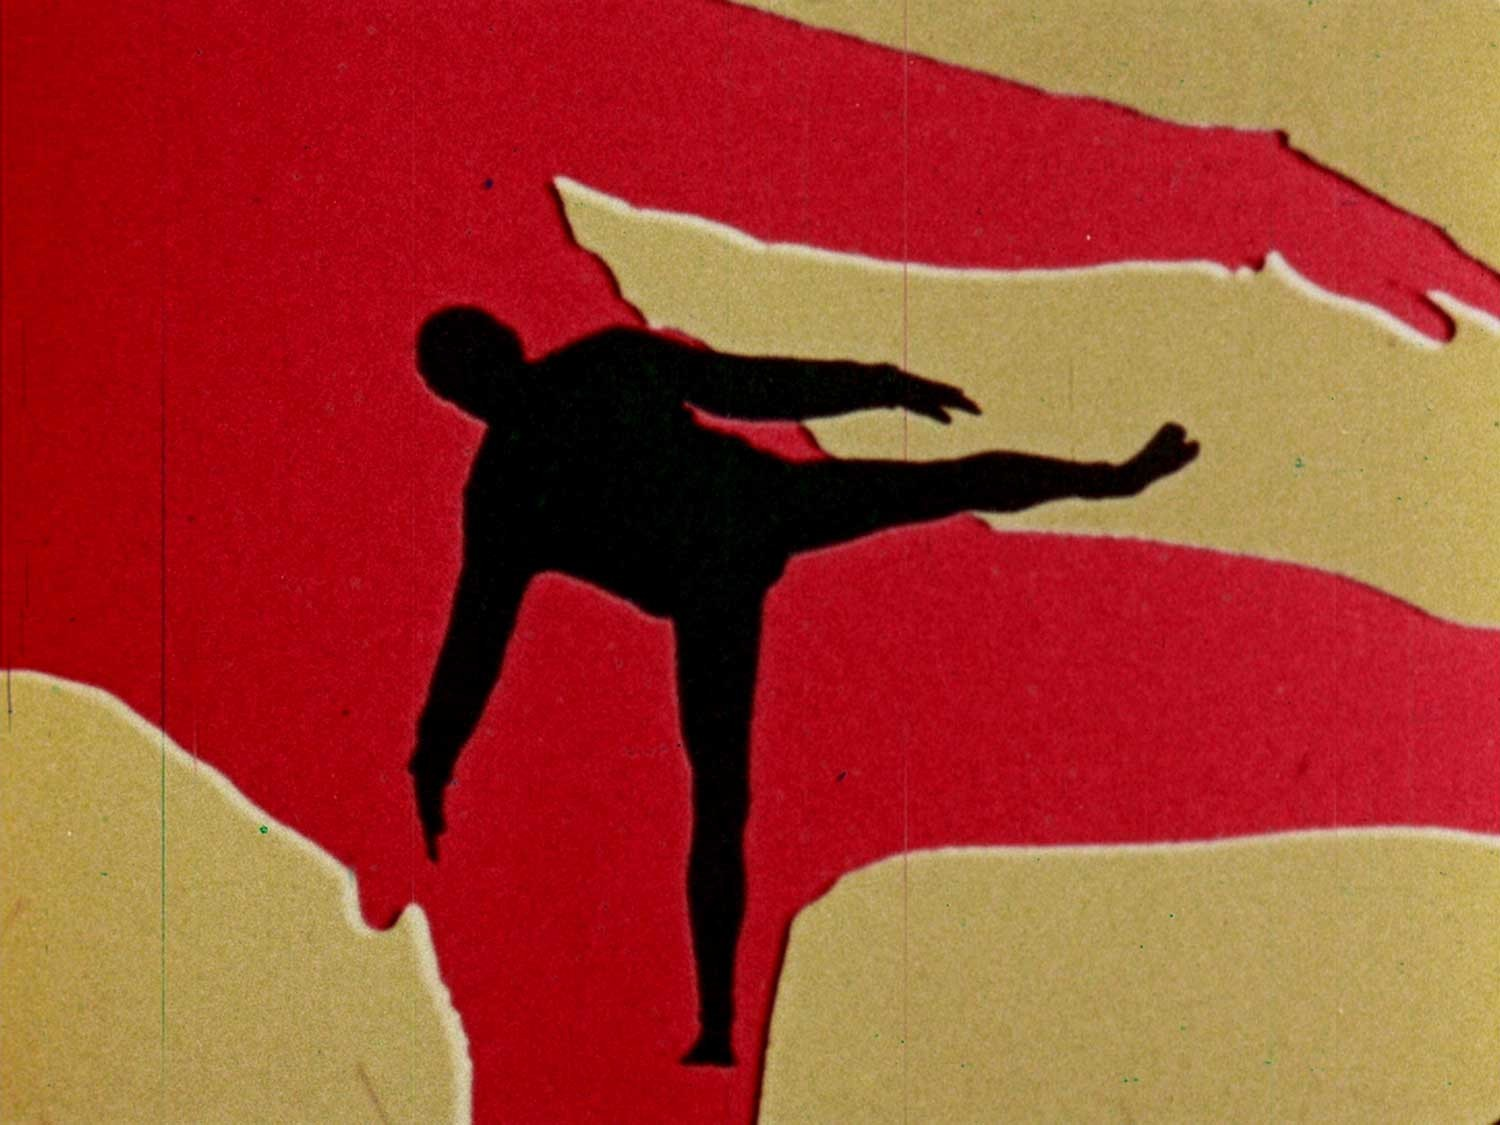 red and yellow background with black silhouette in foreground